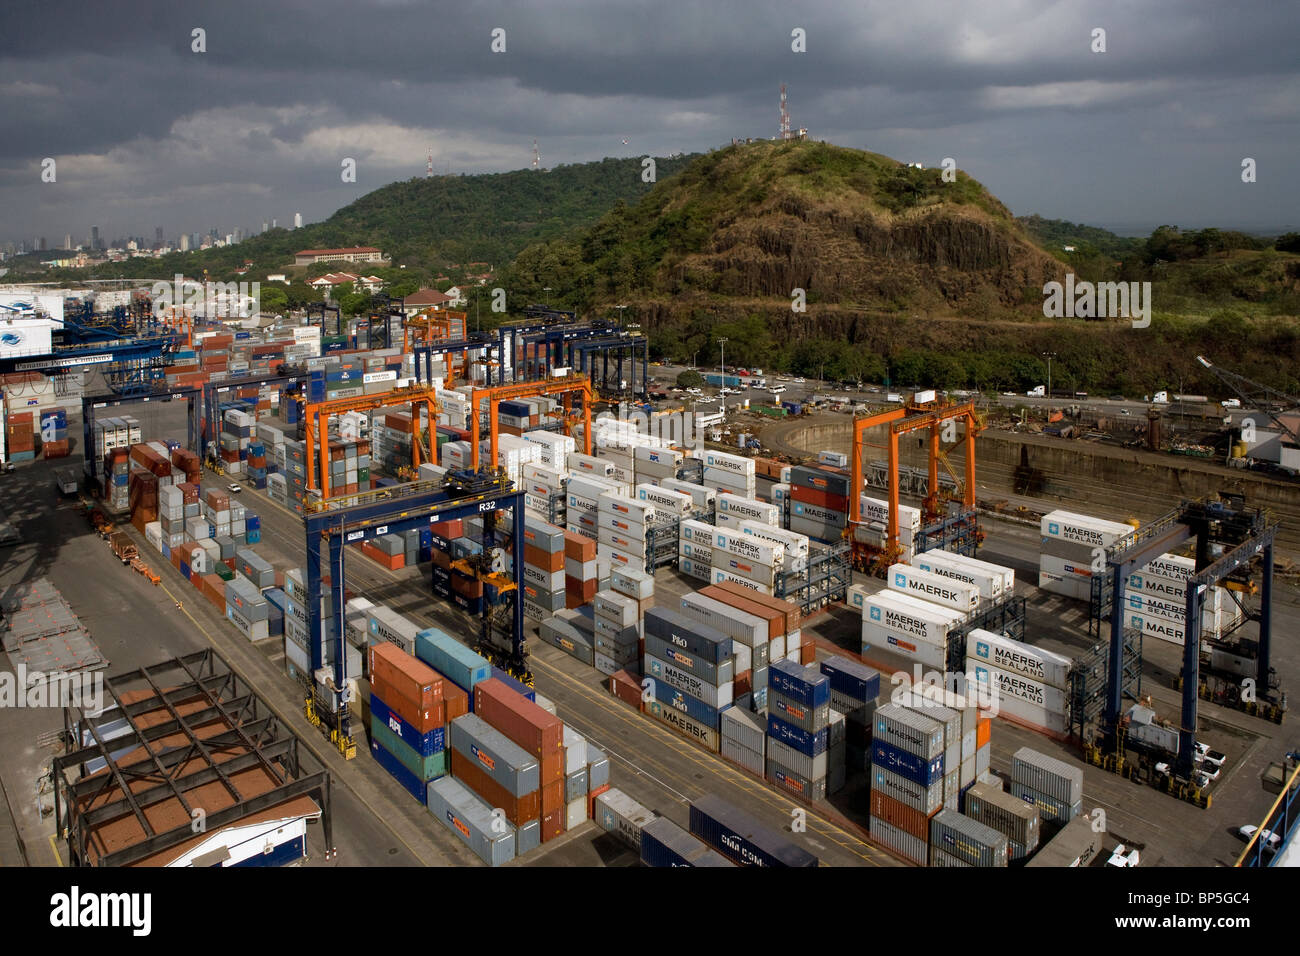 aerial view above containers Balboa Port Panama City Republic of Panama - Stock Image